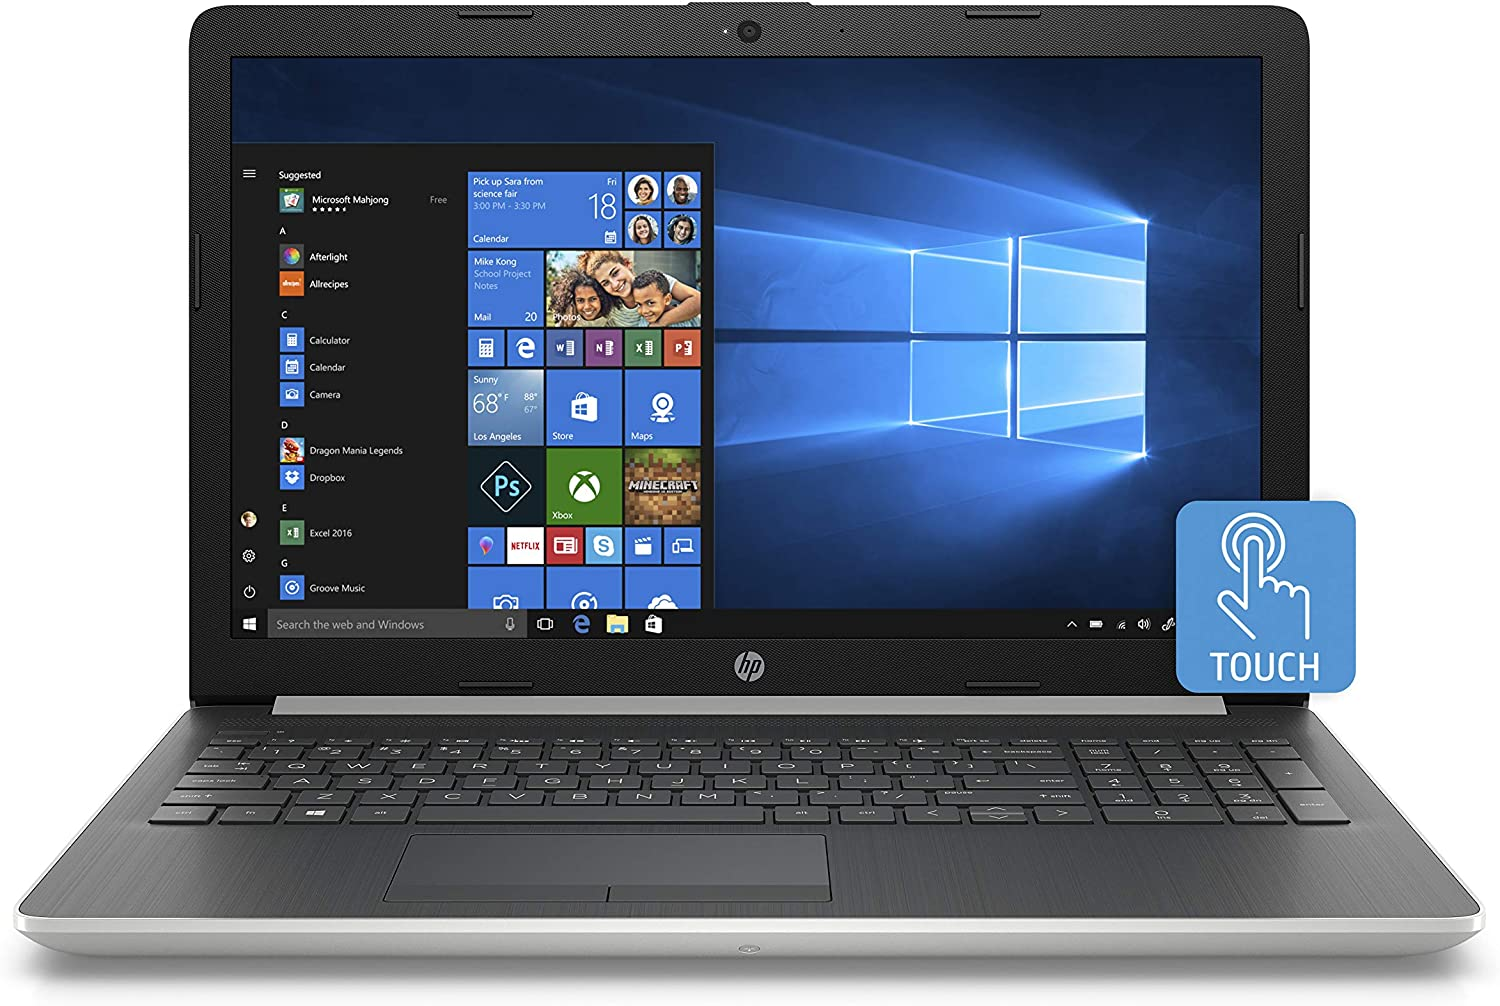 HP 15 Graphite Mist Laptop Touchscreen Intel Core i5-8250U 3.40 GHz 4GB SDRAM + 16GB Intel Optane Memory, 1TB HDD DVD, HD Webcam, Windows 10 (Renewed)